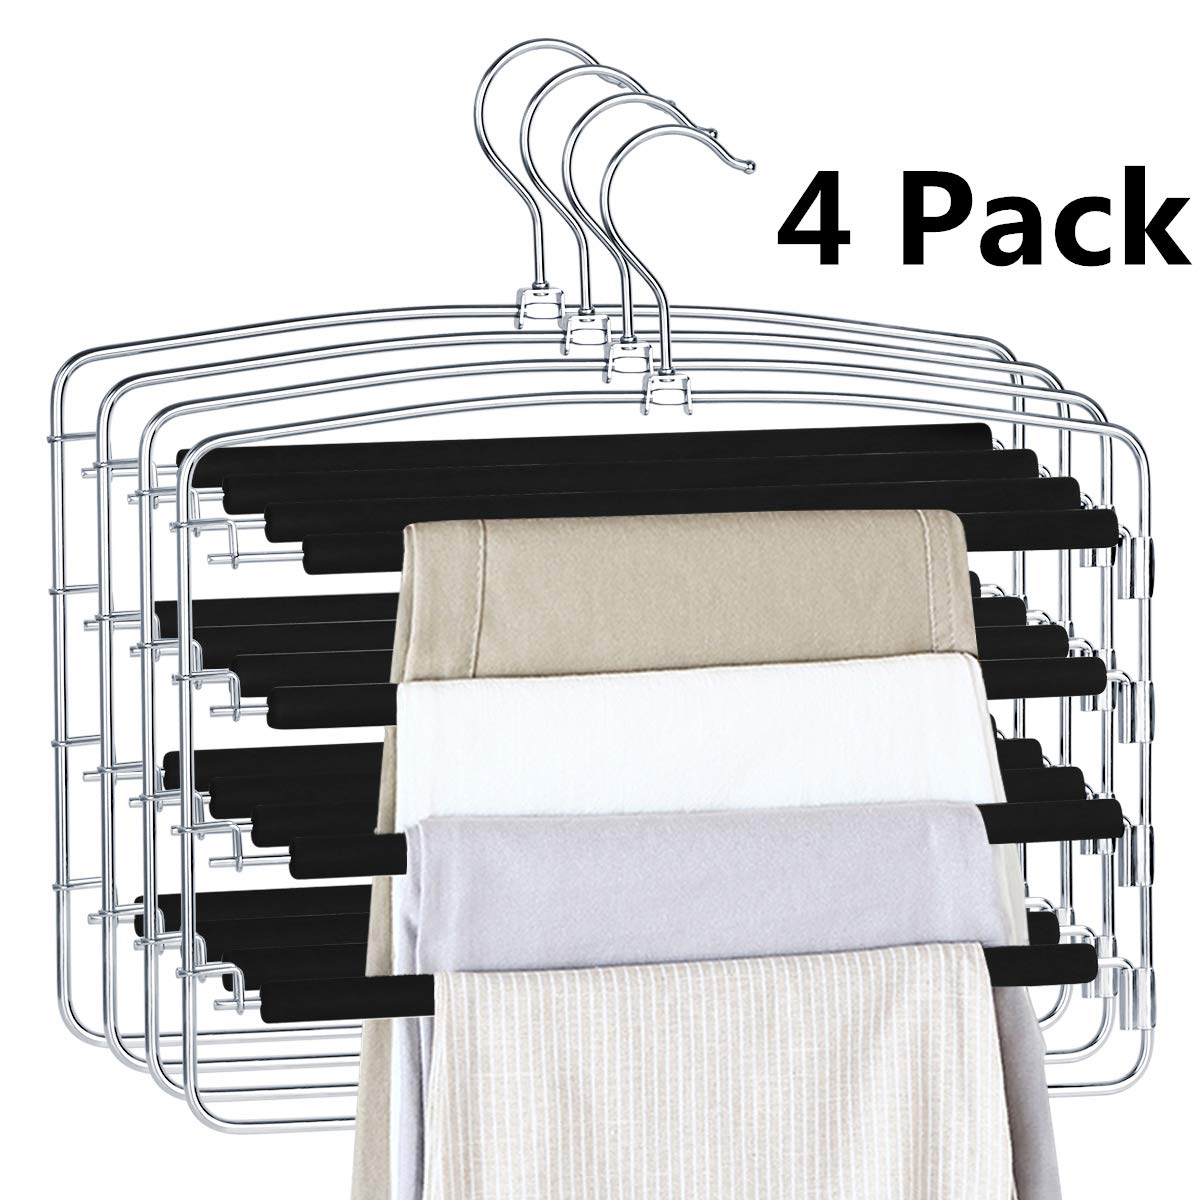 HOMEIDEAS Non Slip Pants Hangers Space Saving Pant Hangers Multi Layers Trousers Hangers Stainless Steel Slack Hangers with Swing Arm, Pack of 4 by HOMEIDEAS